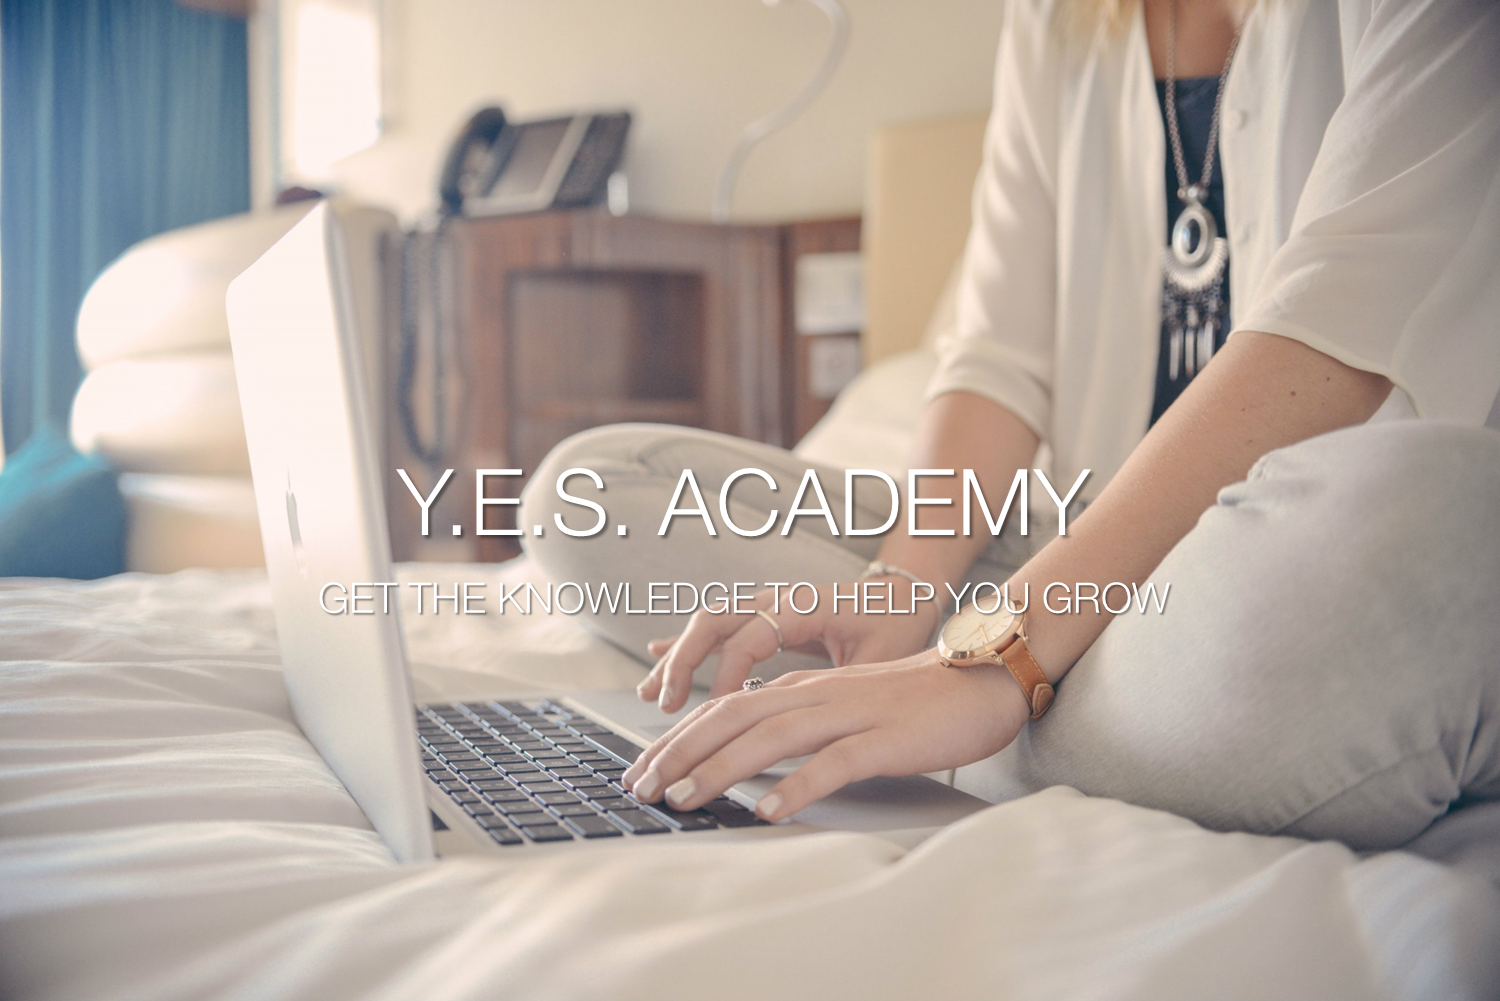 Visit Y.E.S. Academy for in-depth learning